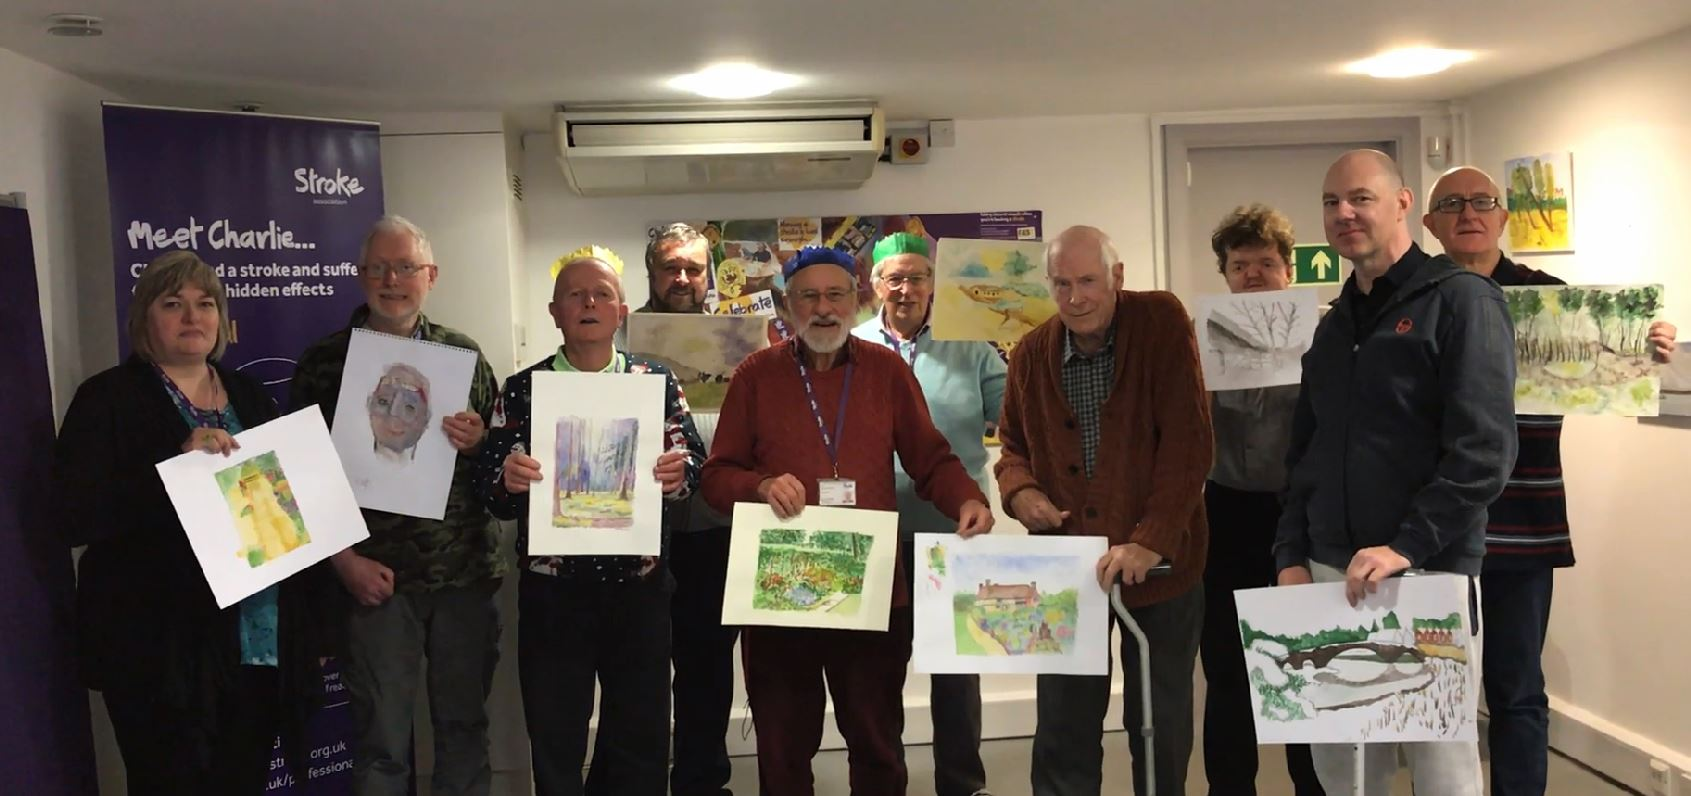 Group of people in a room, each holding artistic creations